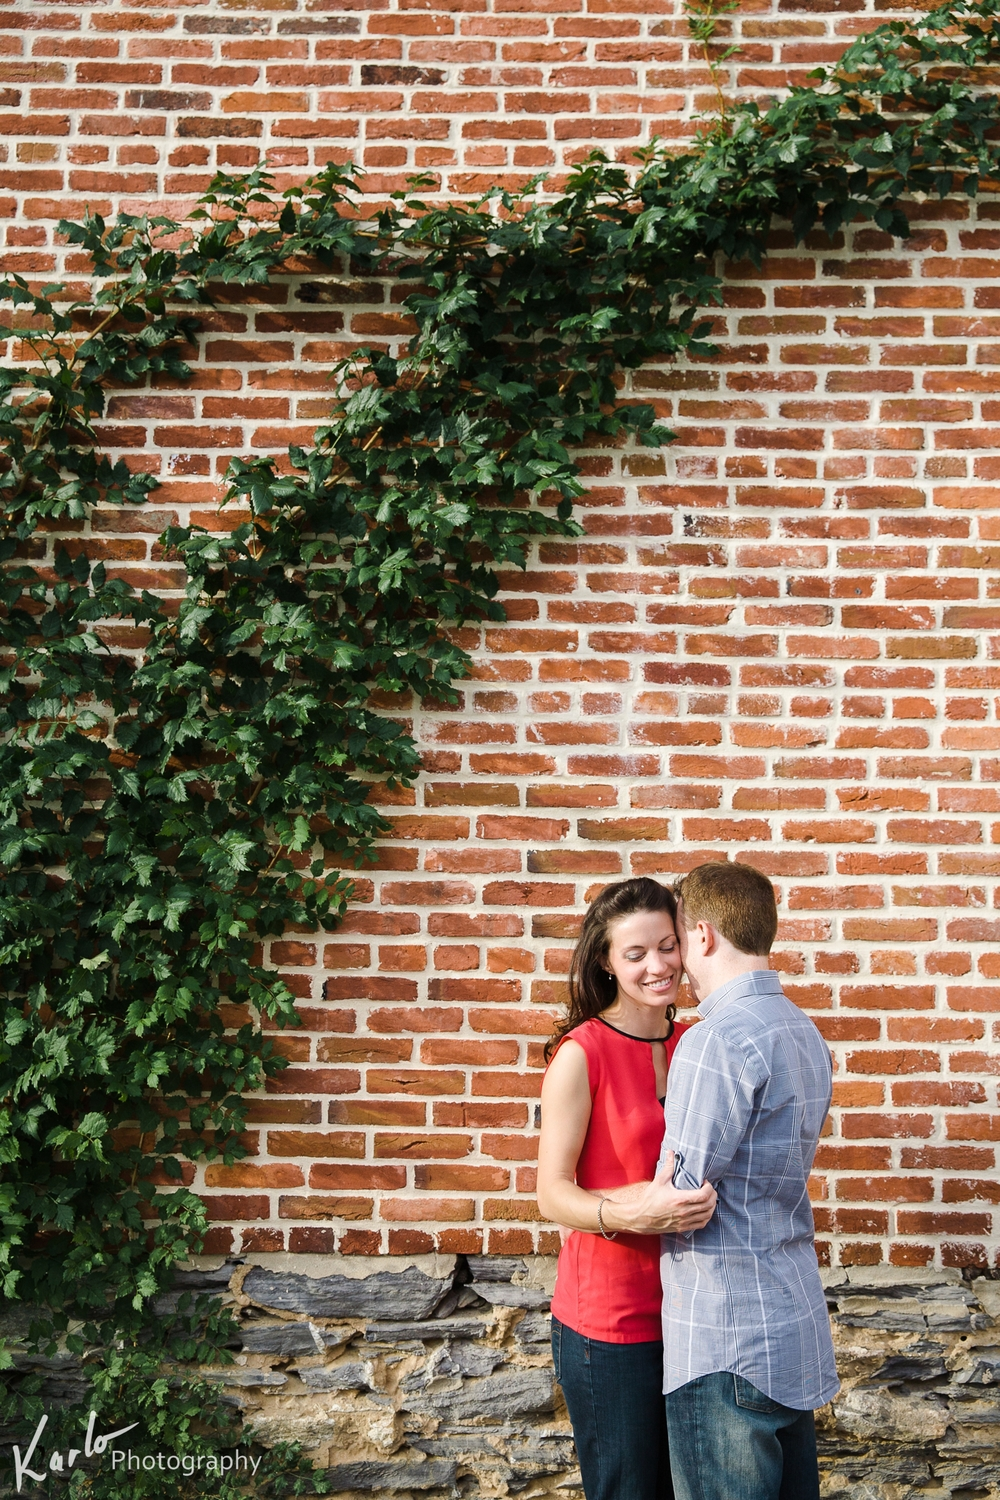 Karlo Photography - Frederick MD Maryland Engagement Photographer0019.JPG